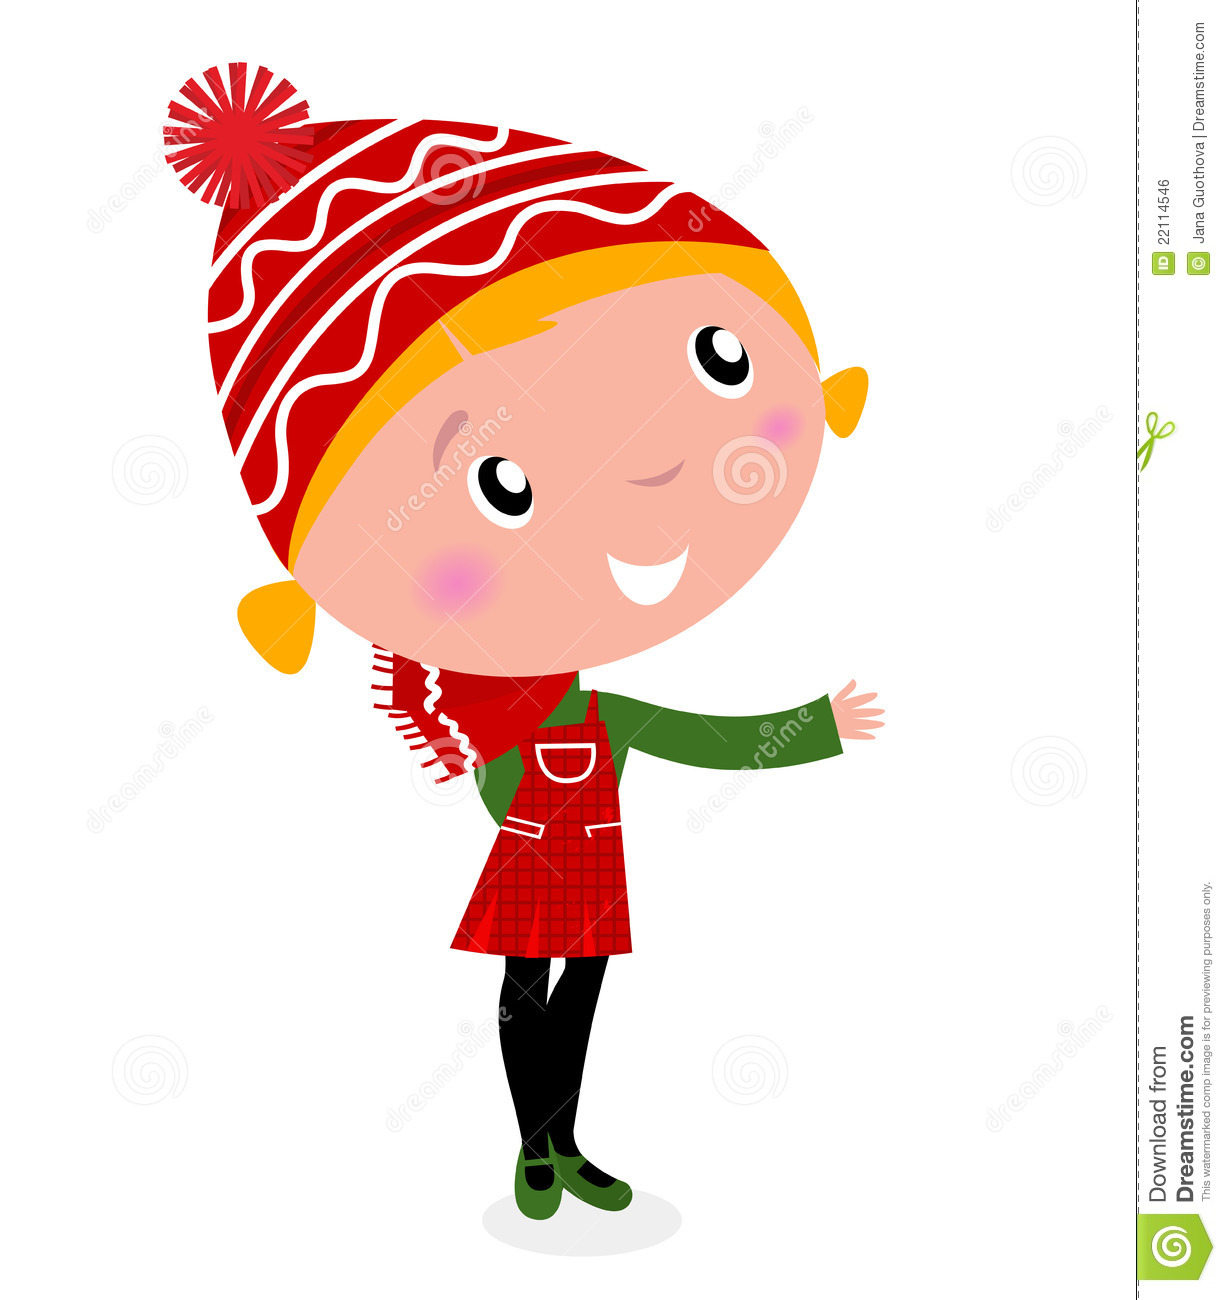 Cute Christmas Cartoon Girl In Red Costume Royalty Free Stock Image ...